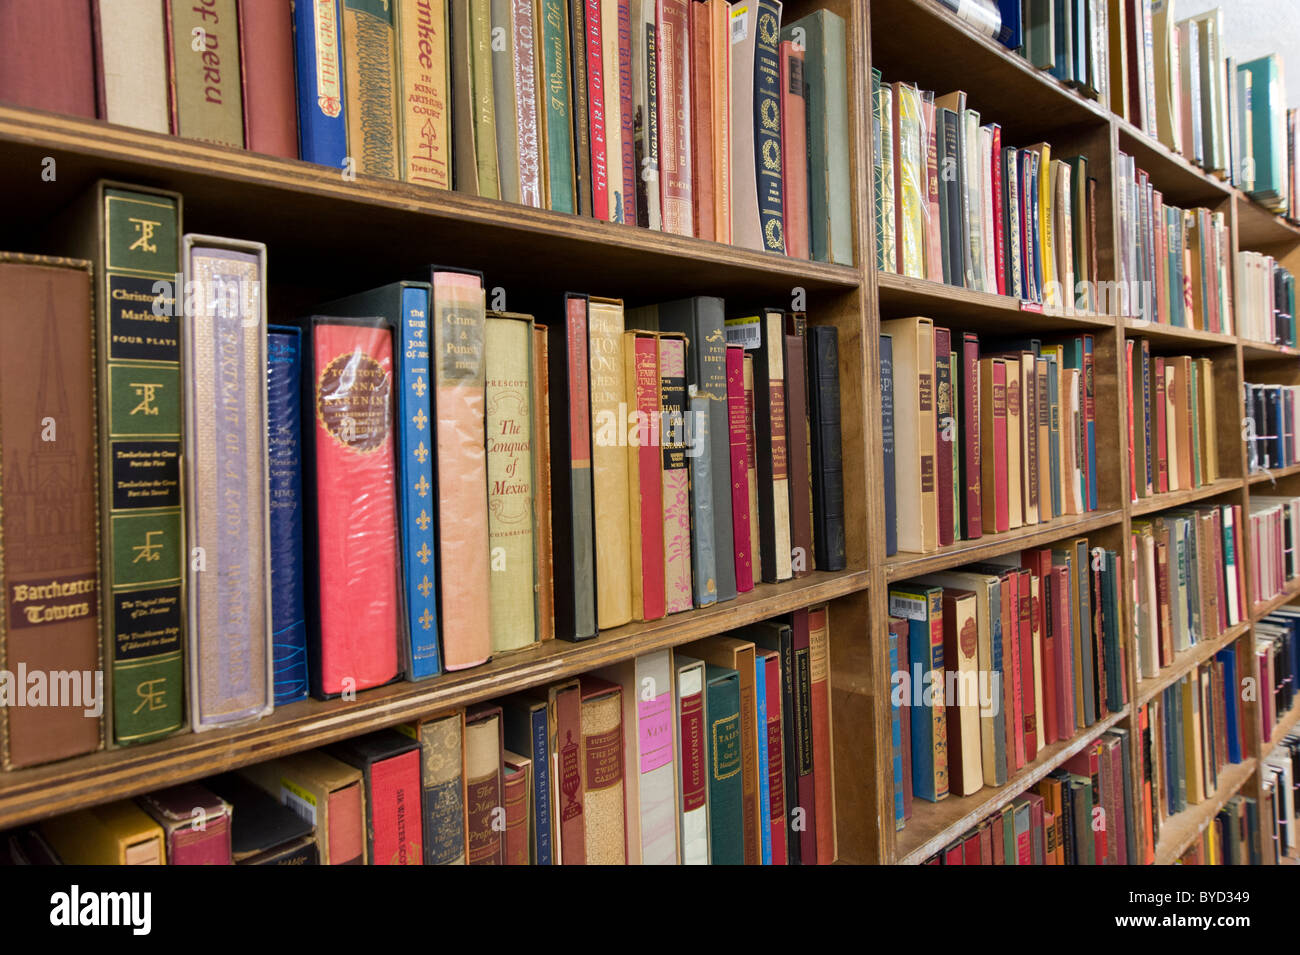 Bookshelves in the Strand Bookstore on Broadway, New York City, USA - Stock Image